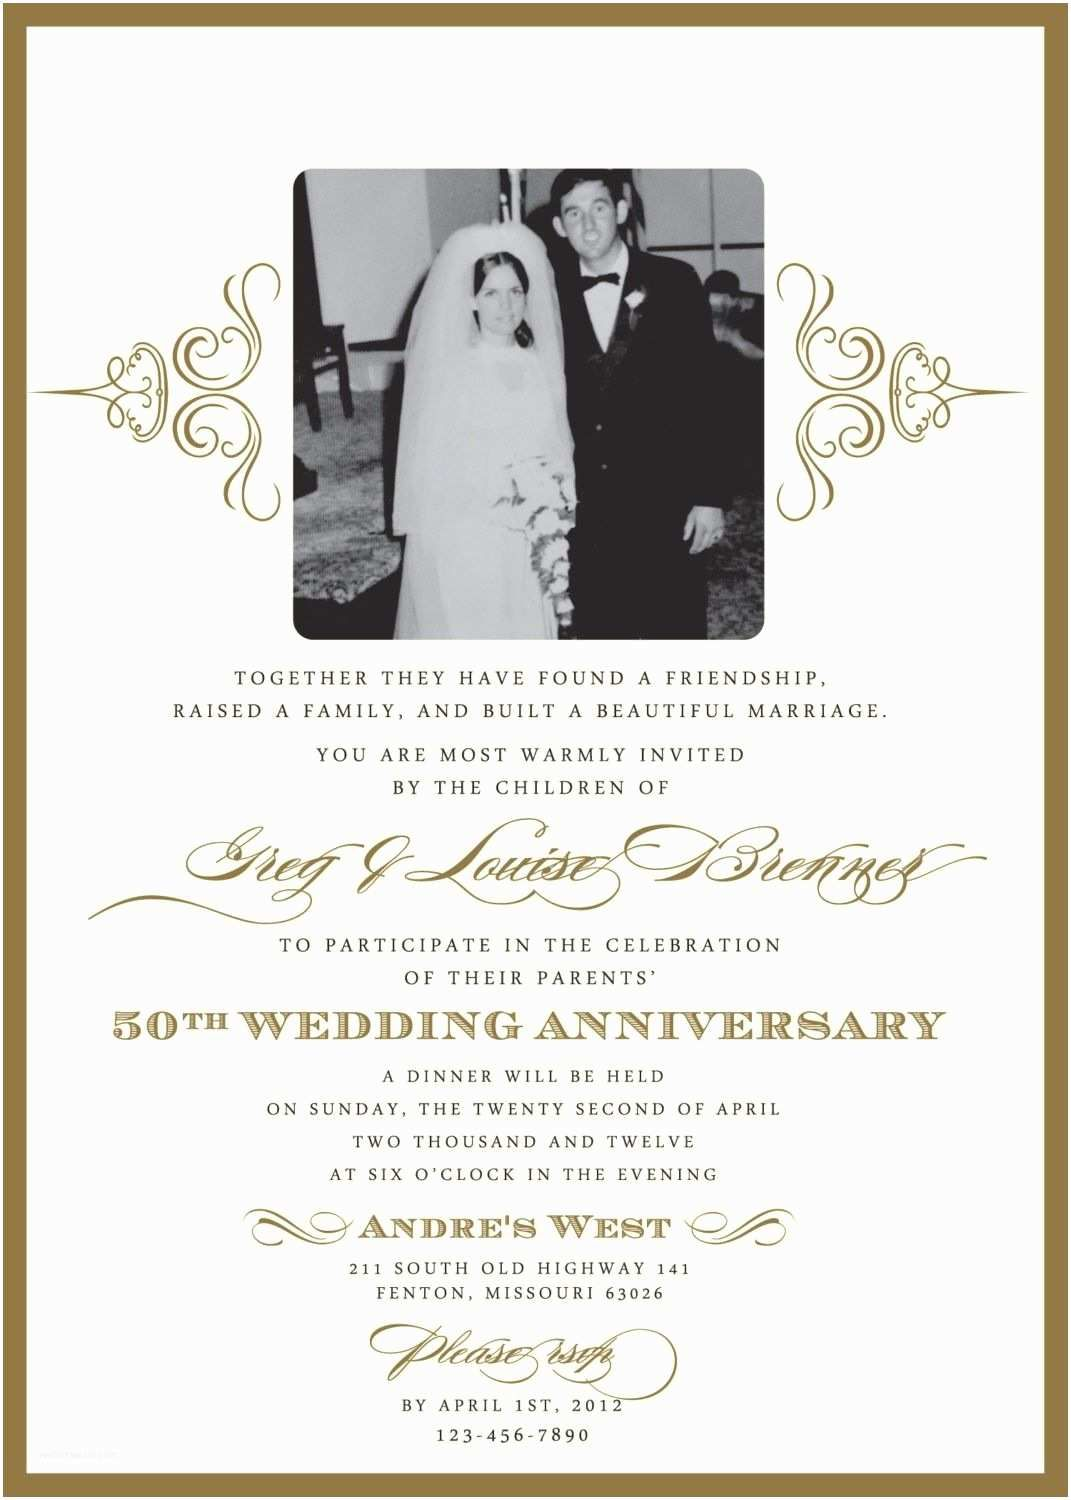 004 Frightening 50th Wedding Anniversary Invitation Template Design  Templates Golden Uk Free DownloadFull